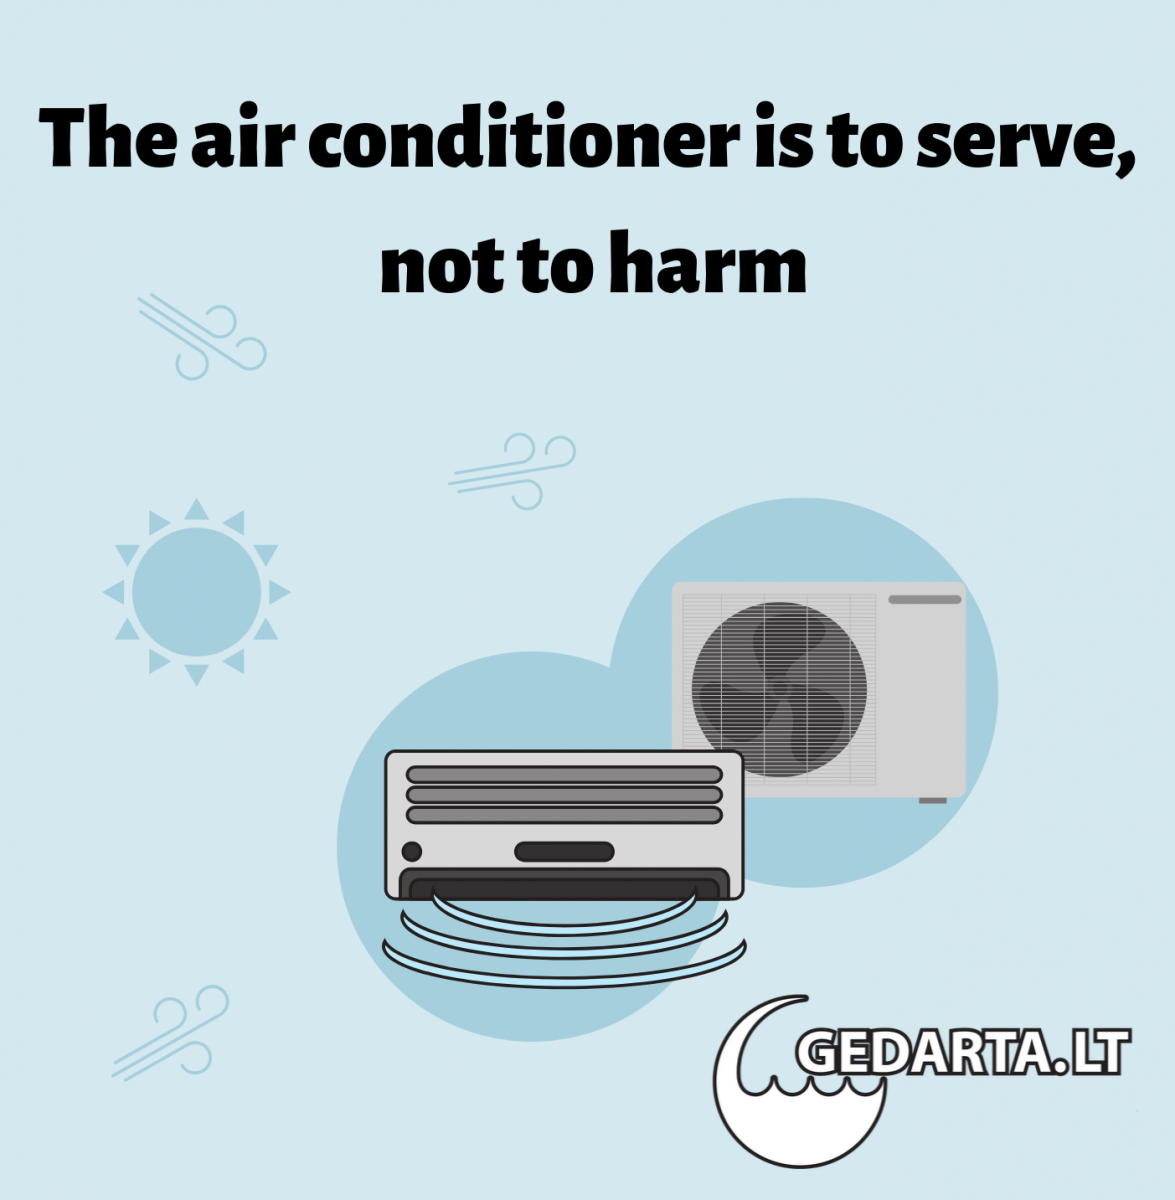 The air conditioner is to serve, not to harm